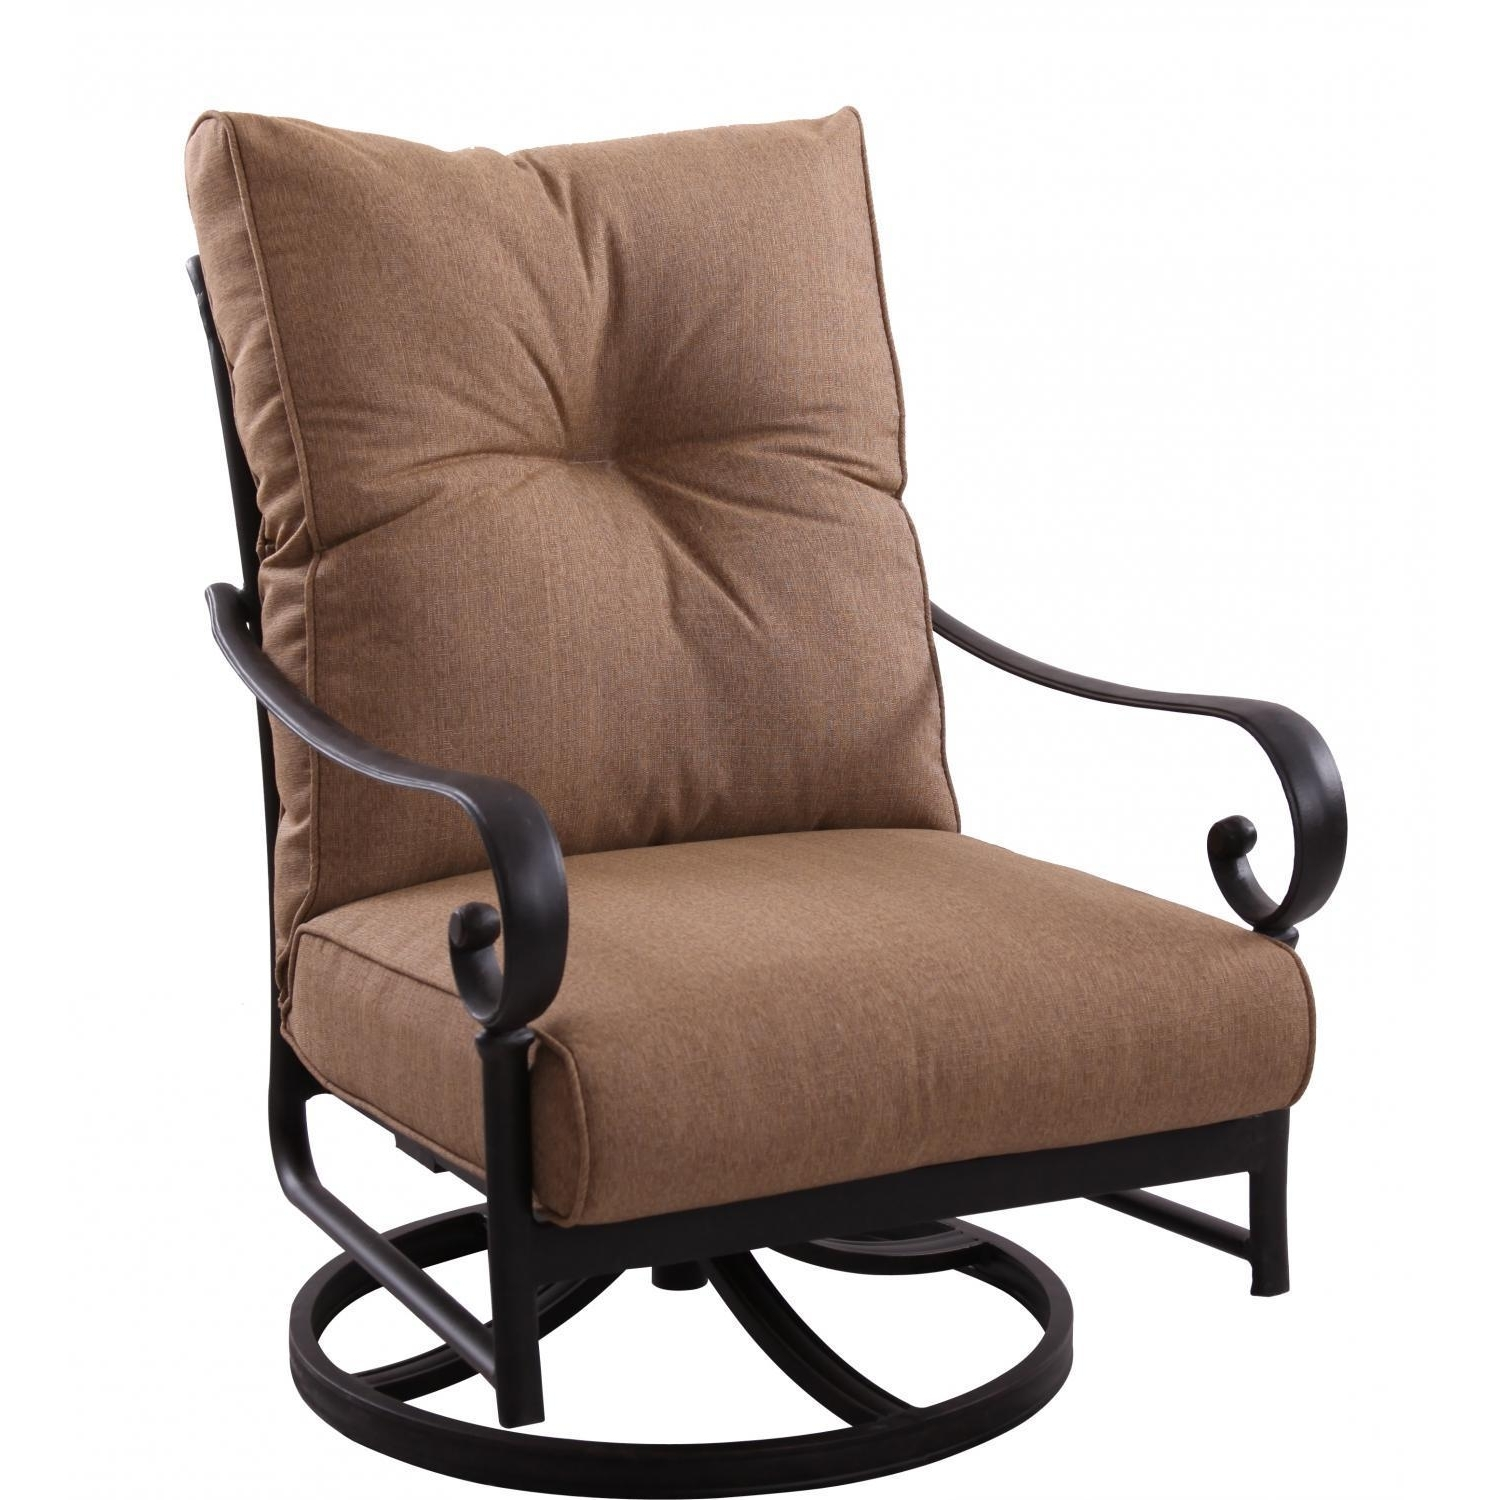 Darlee Santa Anita Cast Aluminum Patio Swivel Rocker Club Chair For Famous Patio Rocking Chairs With Ottoman (View 4 of 20)